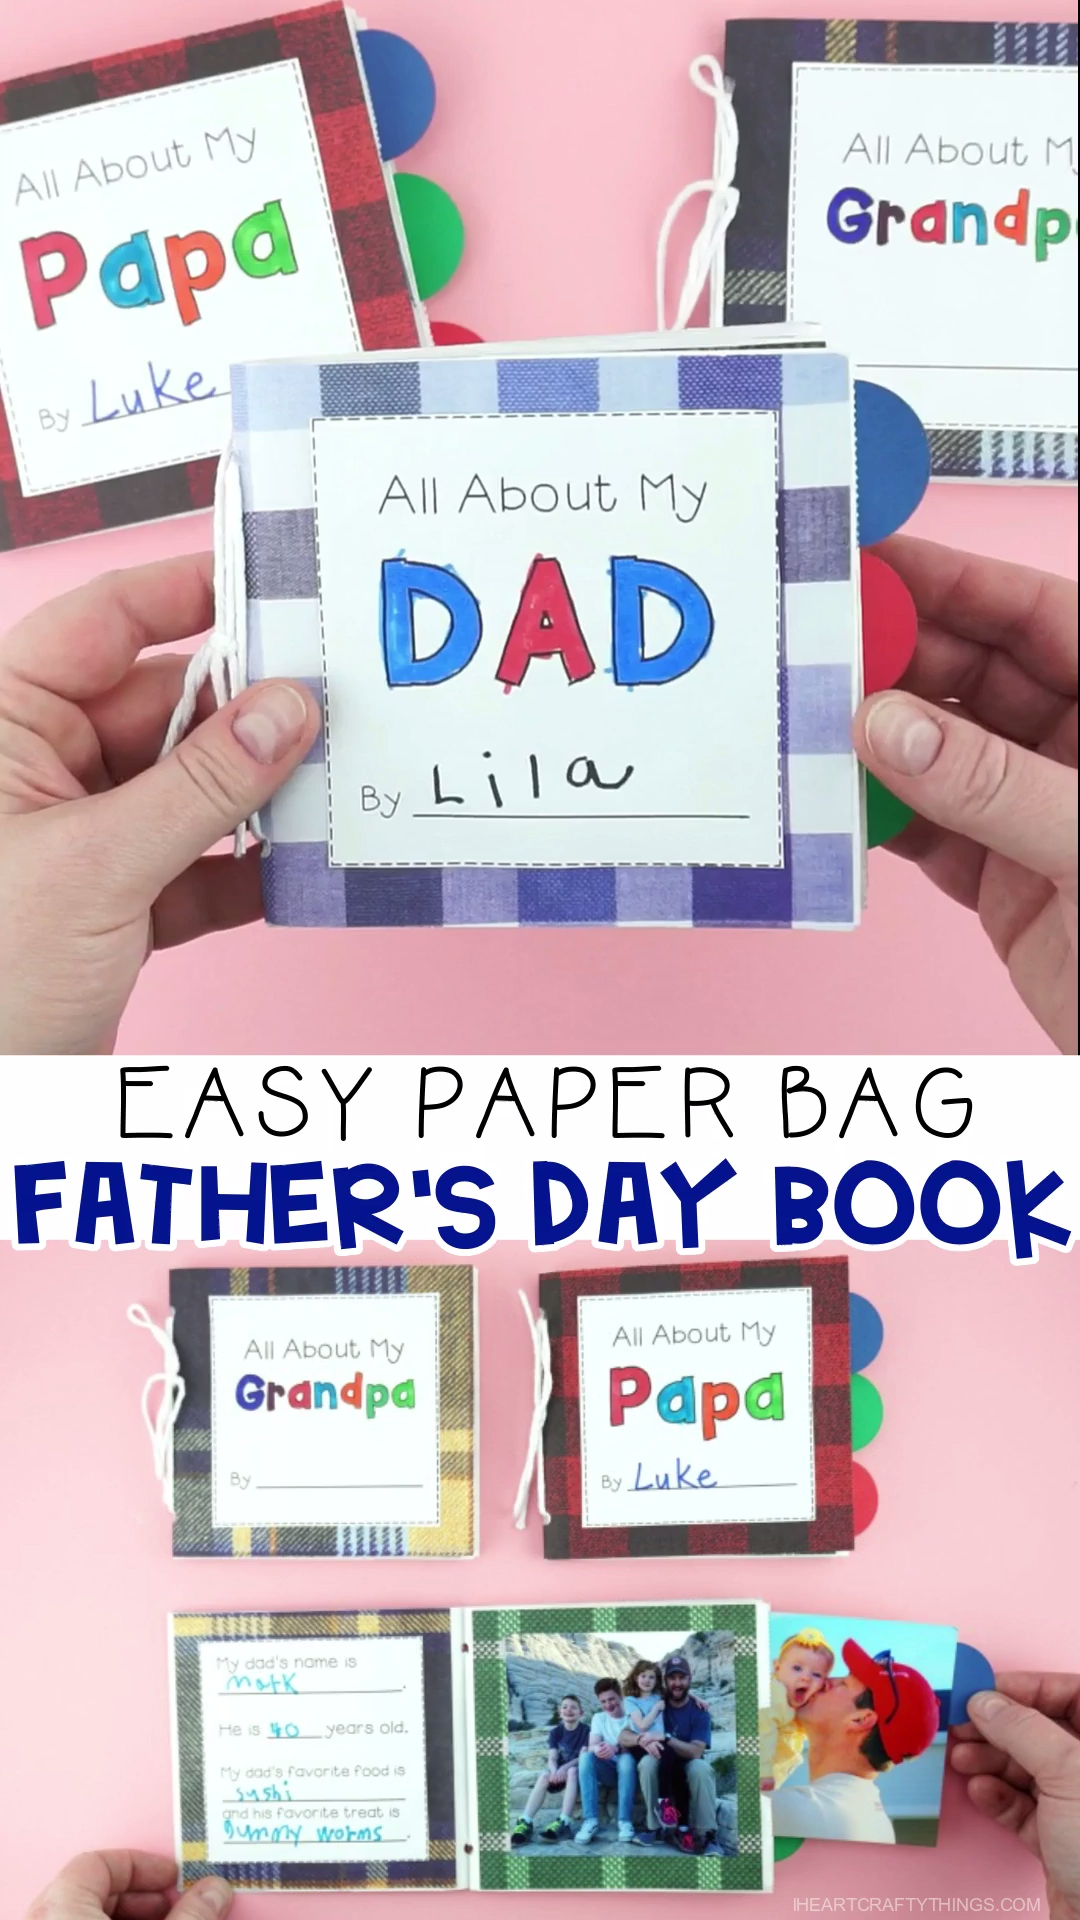 How to Make a Paper Bag Father's Day Book